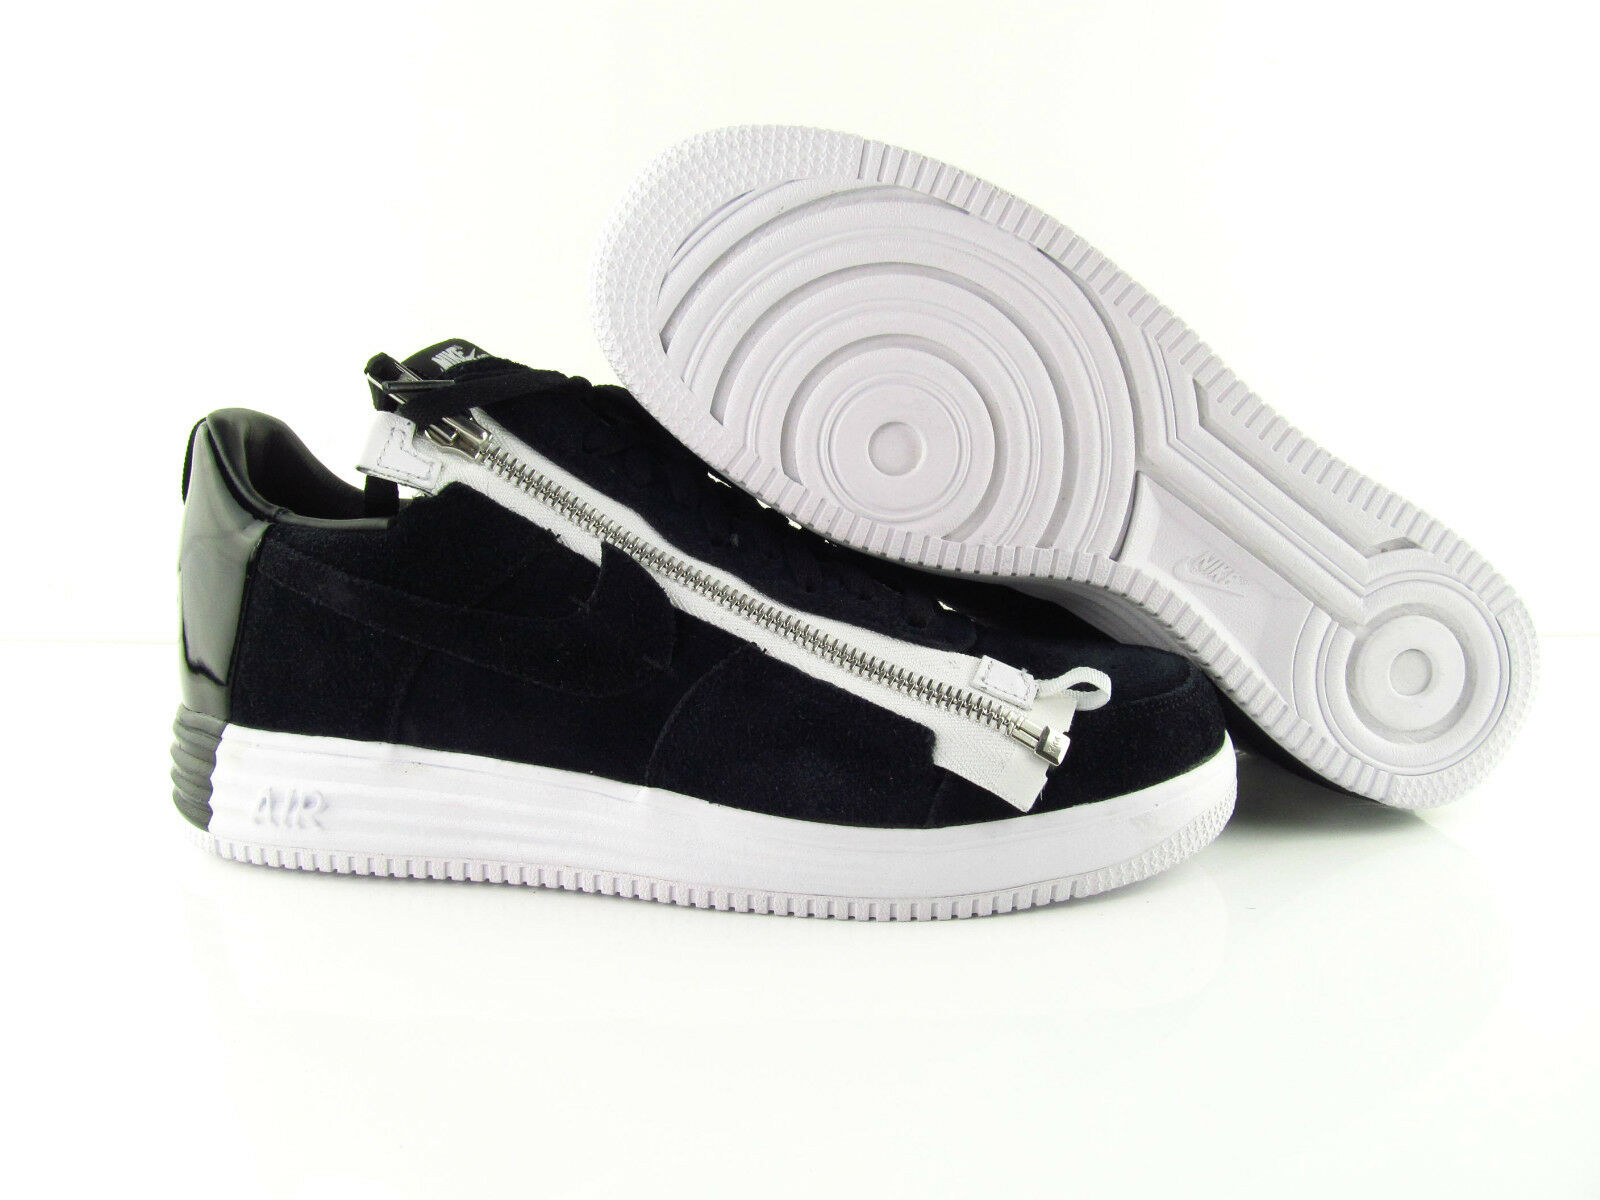 Nike Lunar Force 1 Acronym Black White Zipper Very Rare US_12 EUR 46